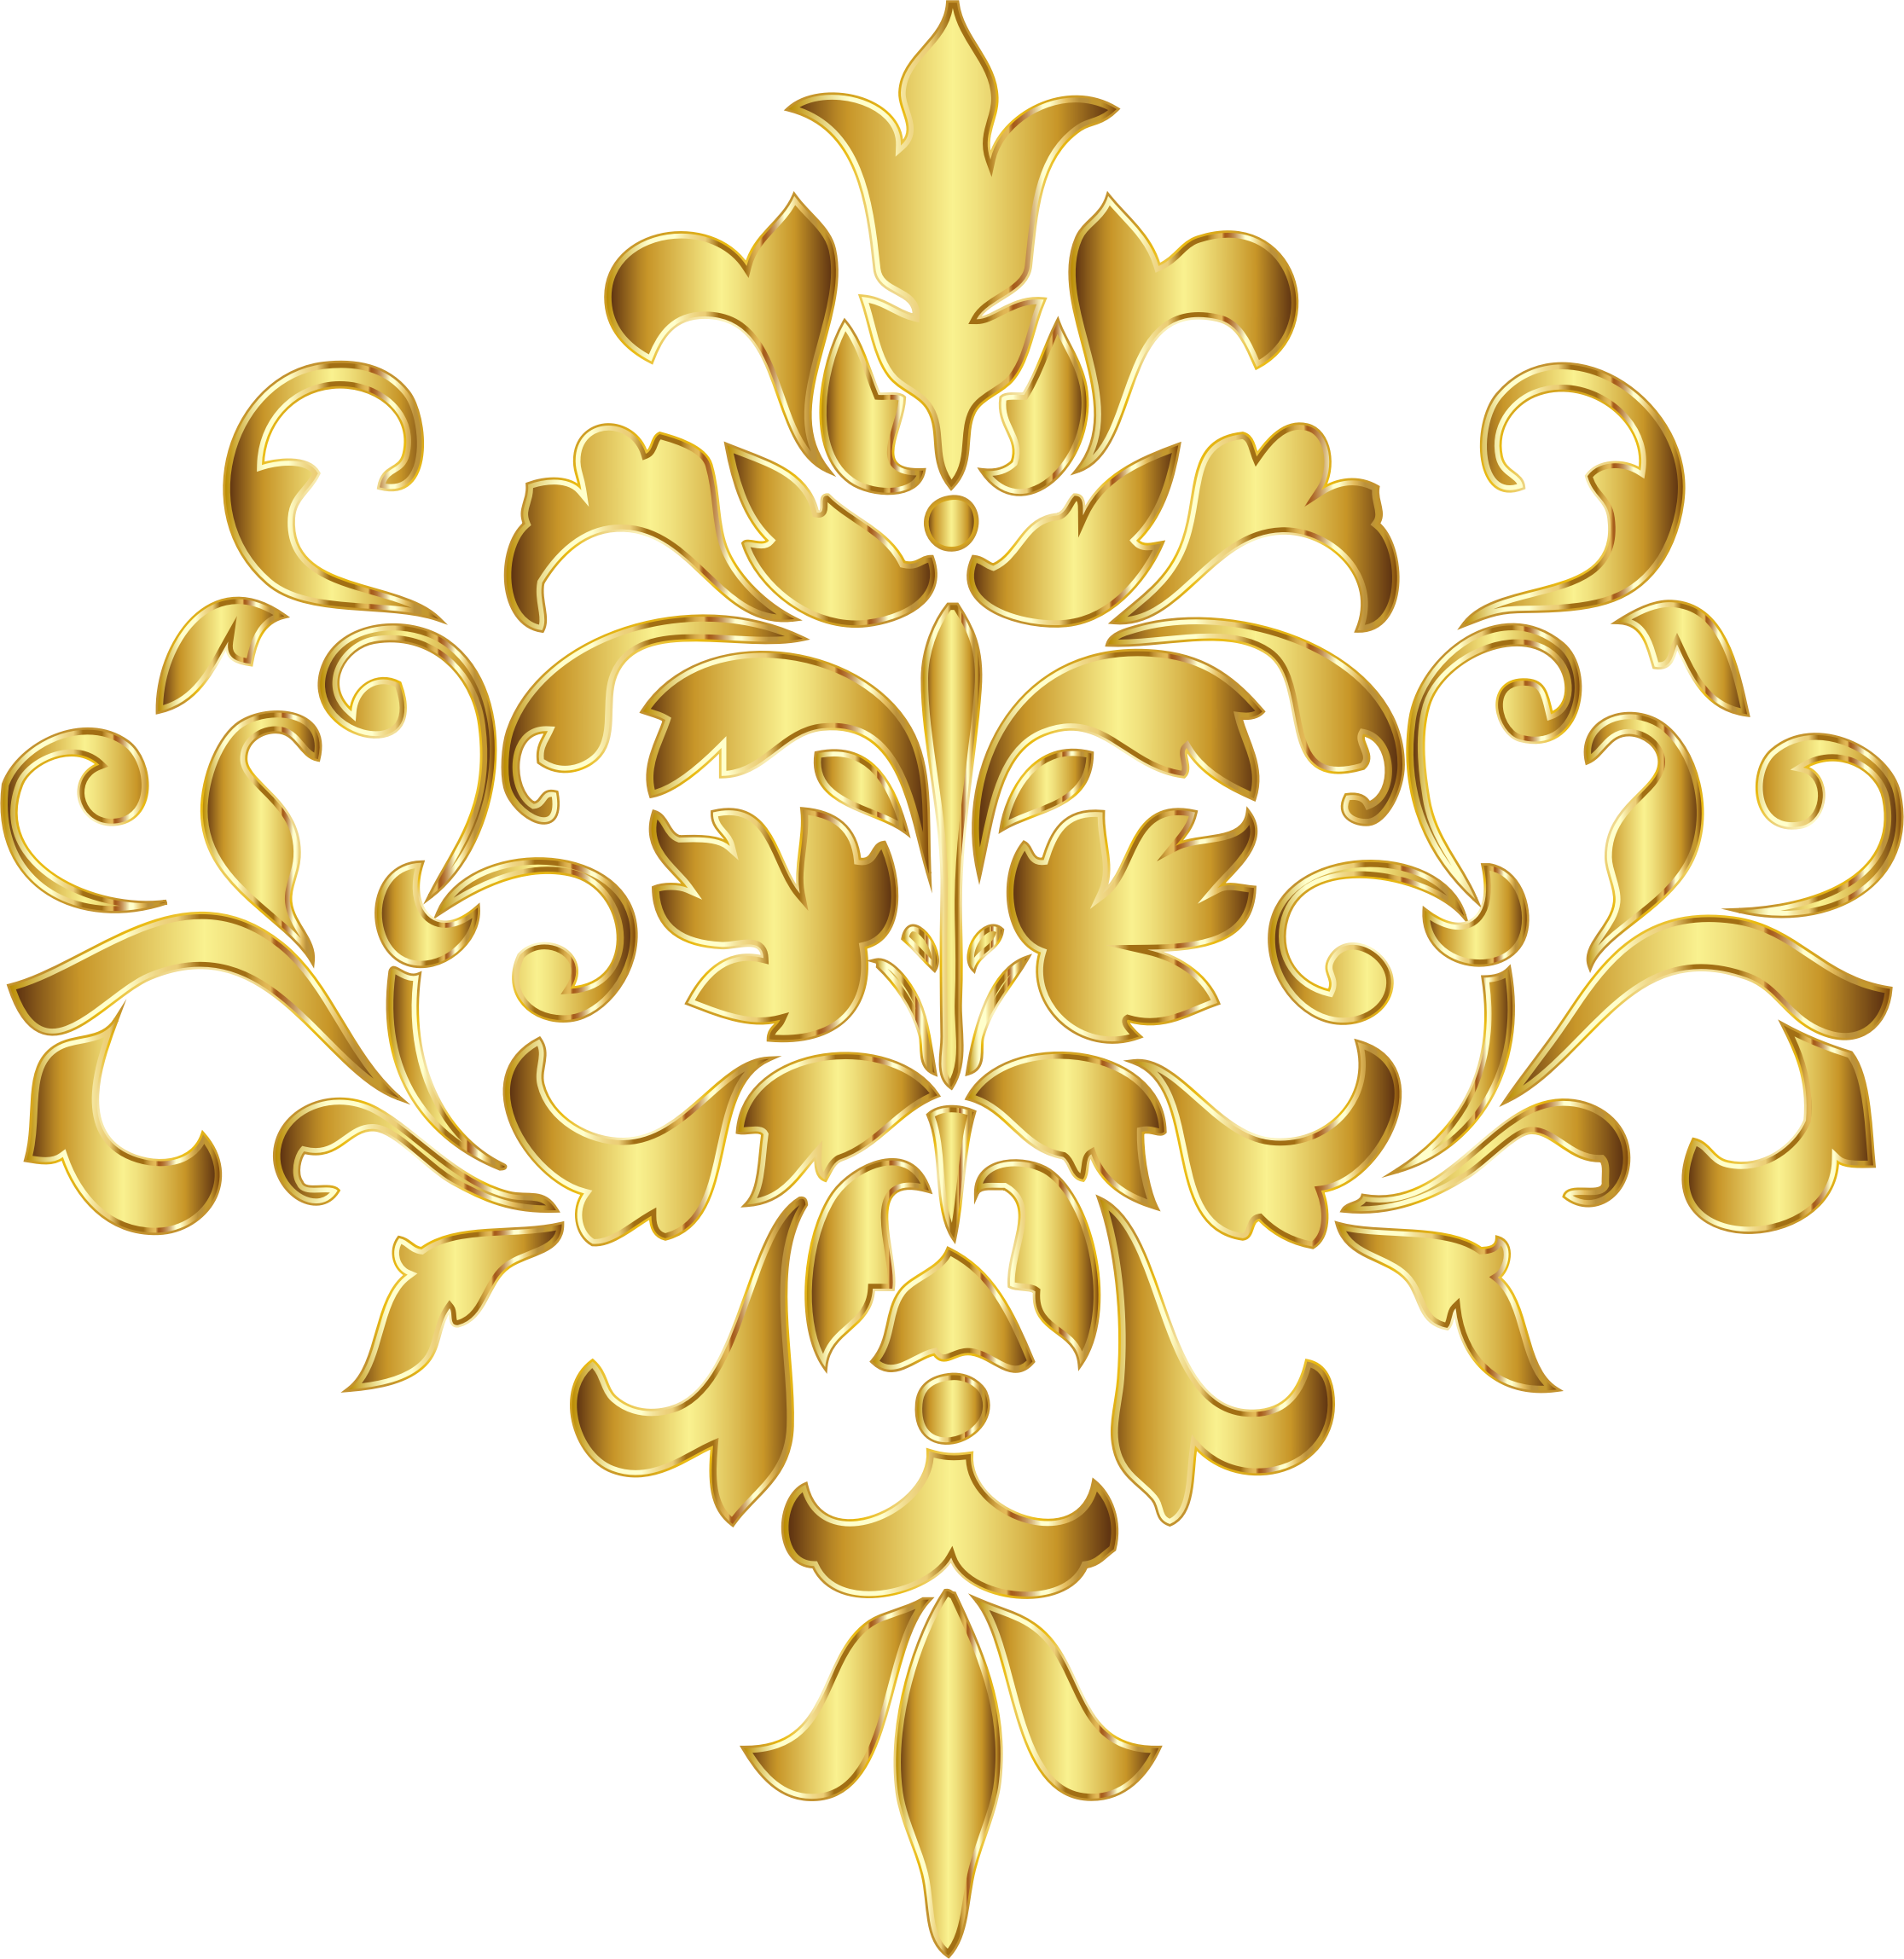 Gold Damask Design No Background by GDJ